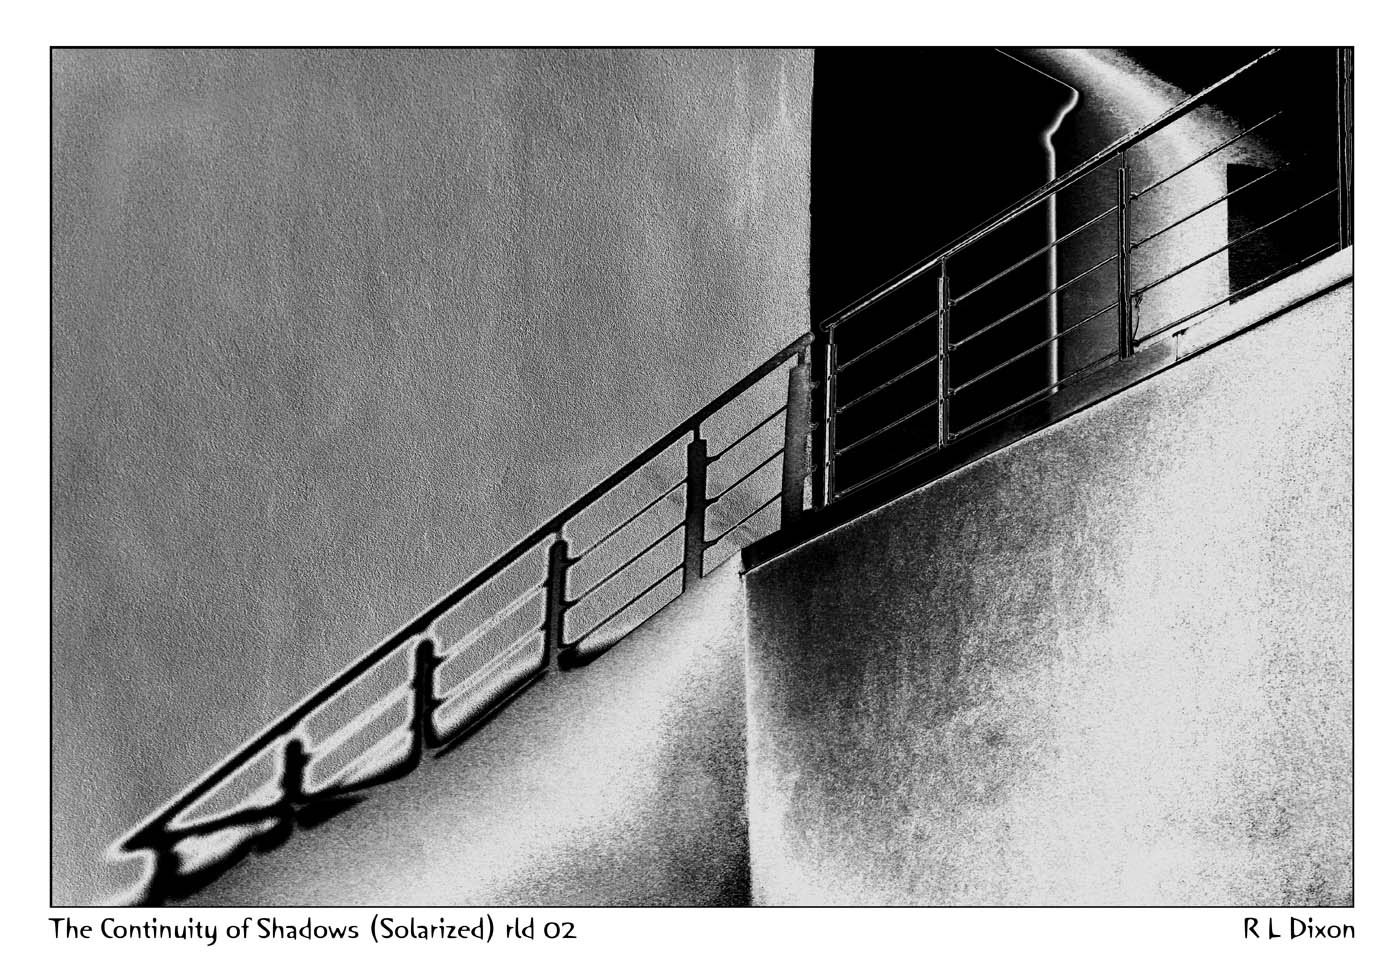 The Continuity of Shadows (Sollarized)  rld 02 das by richardldixon